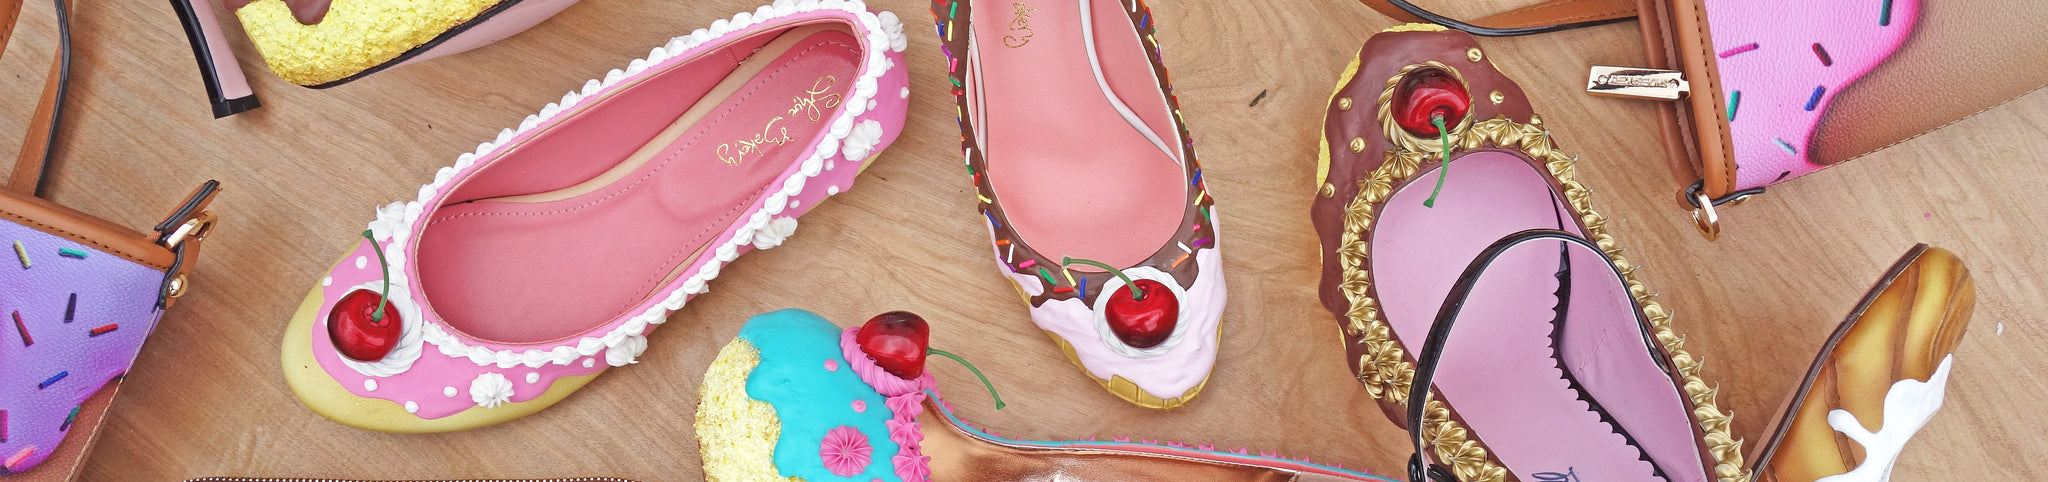 906a3c20f0 All Shoes - Shoe Bakery